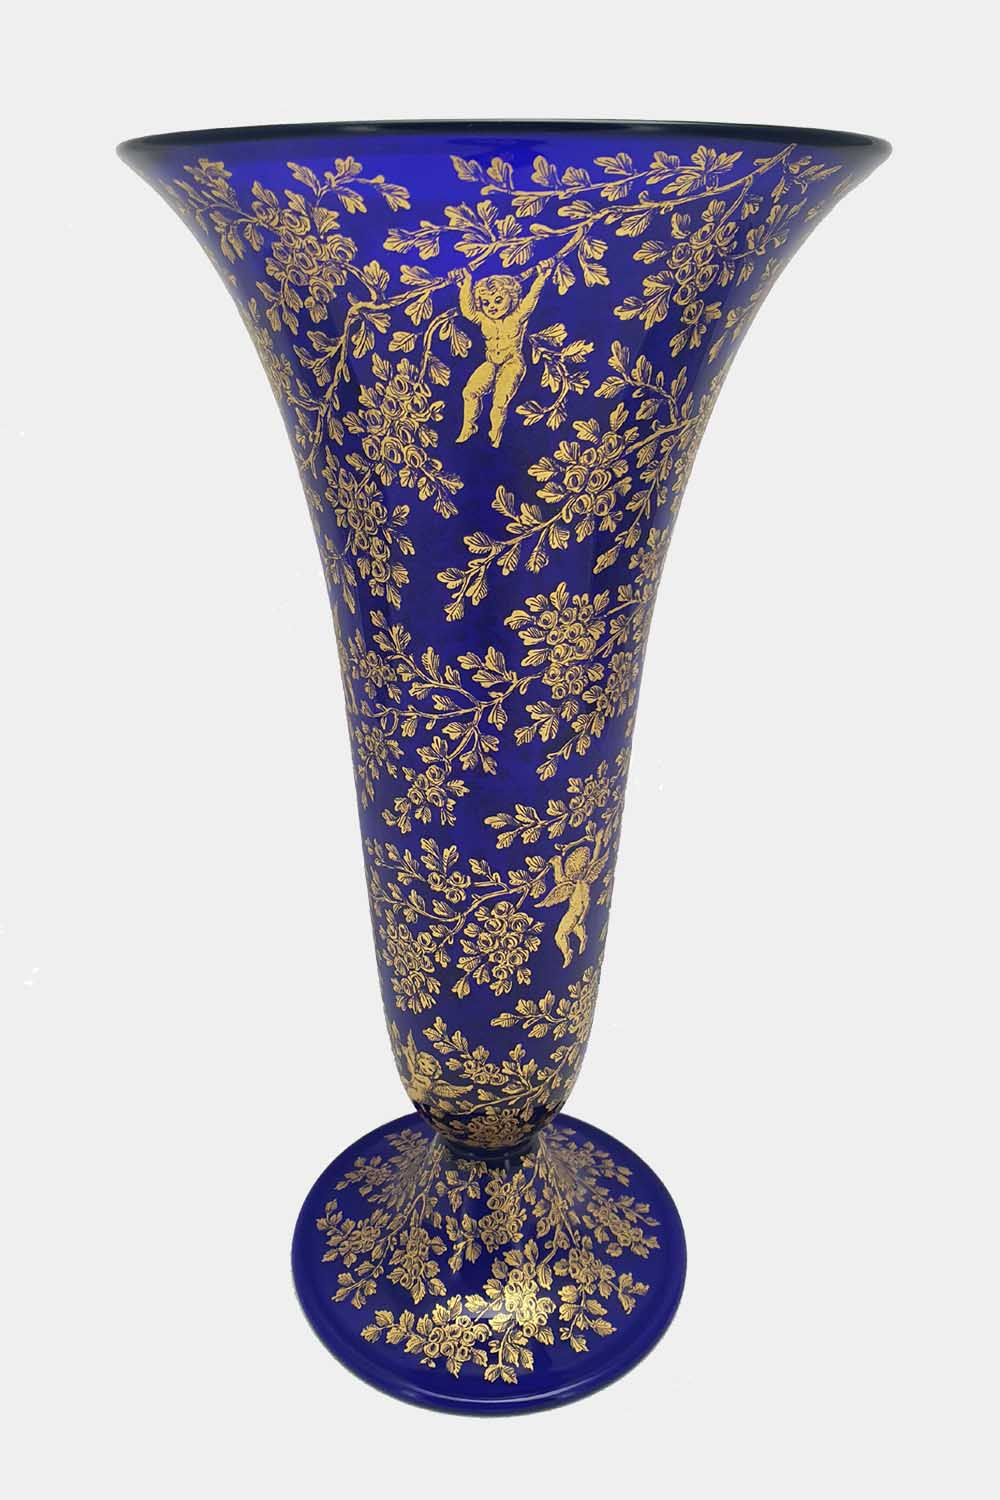 Blue vase gold graffito playing cupids (5)